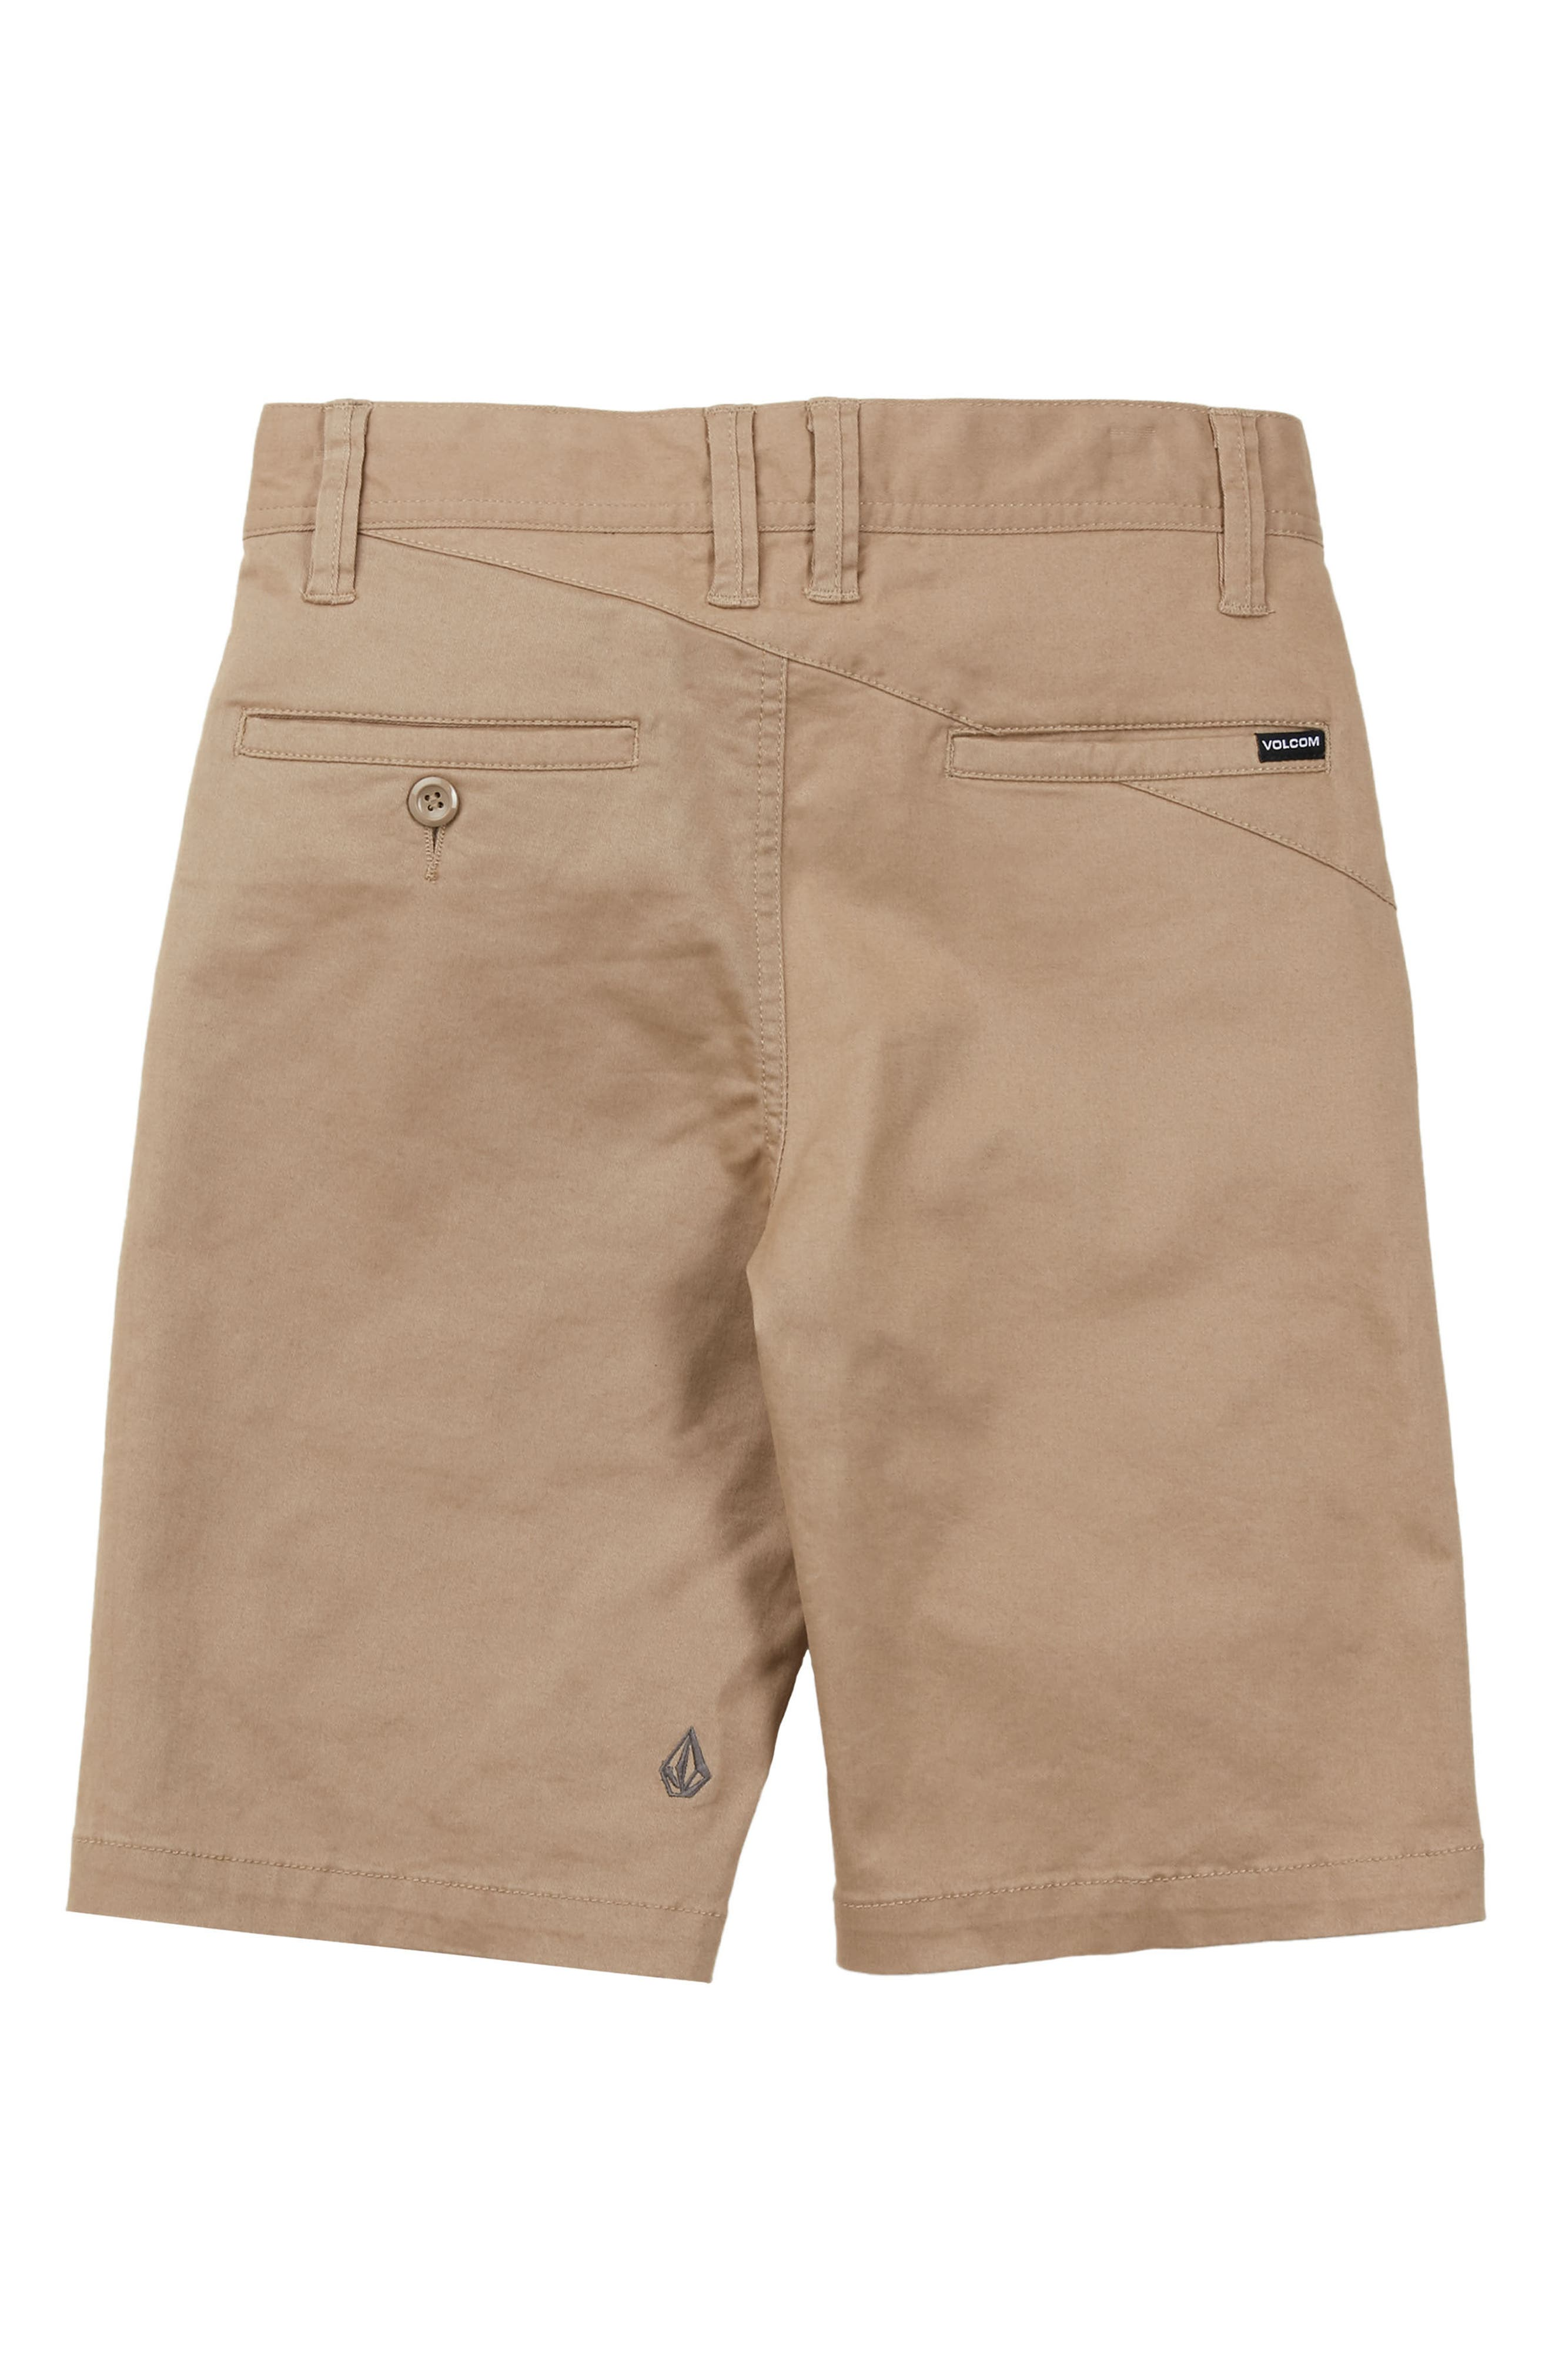 Cotton Twill Shorts,                             Alternate thumbnail 2, color,                             254